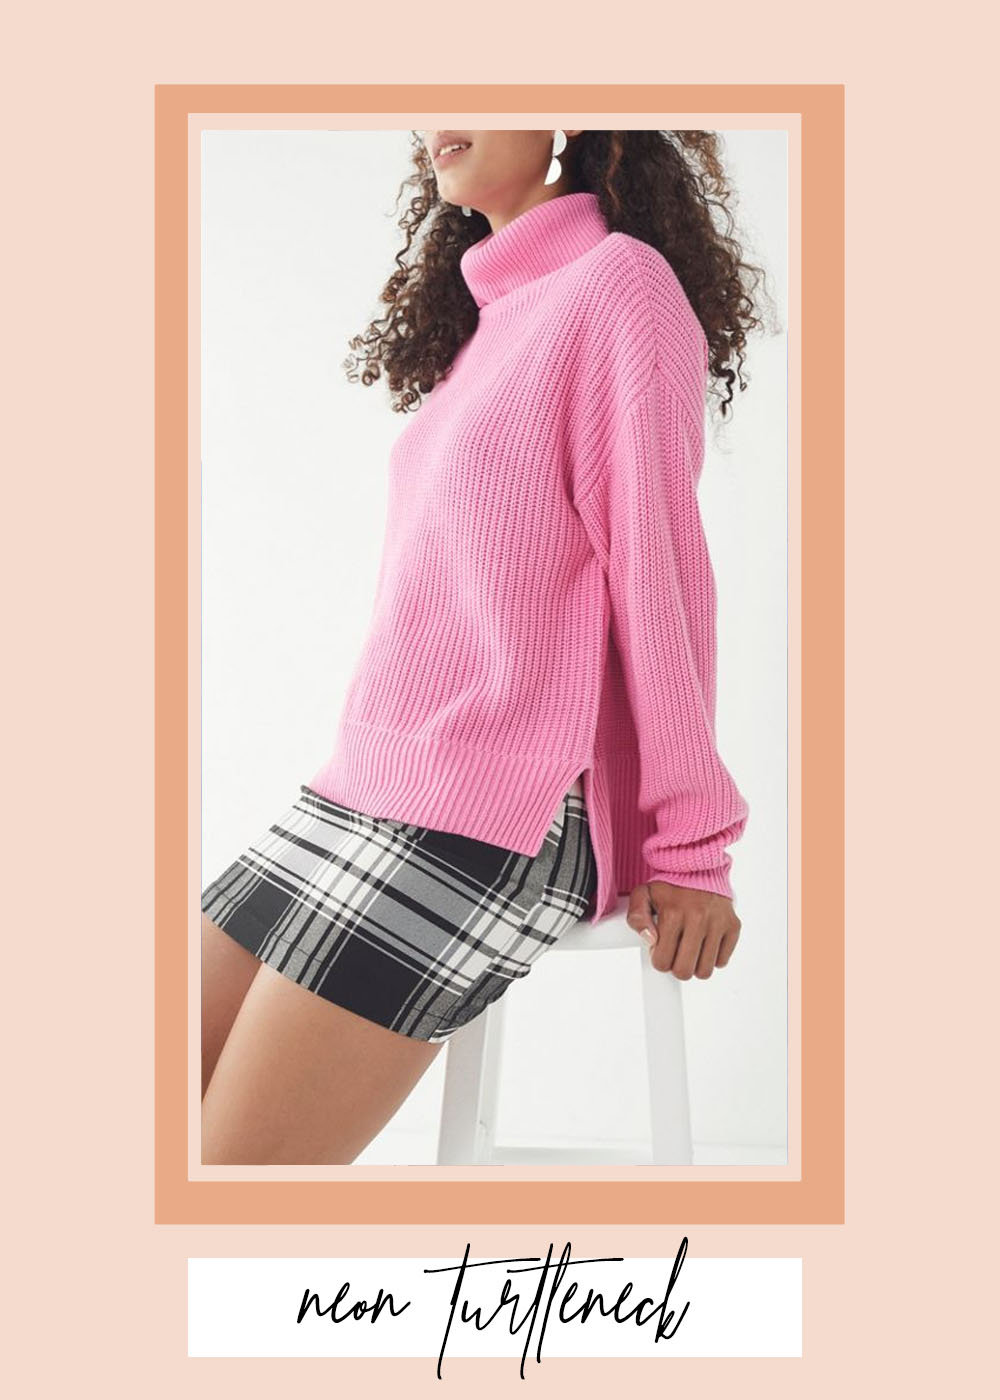 008. - UO PULLOVER TURTLENECK SWEATERUrban Outfitters // $59